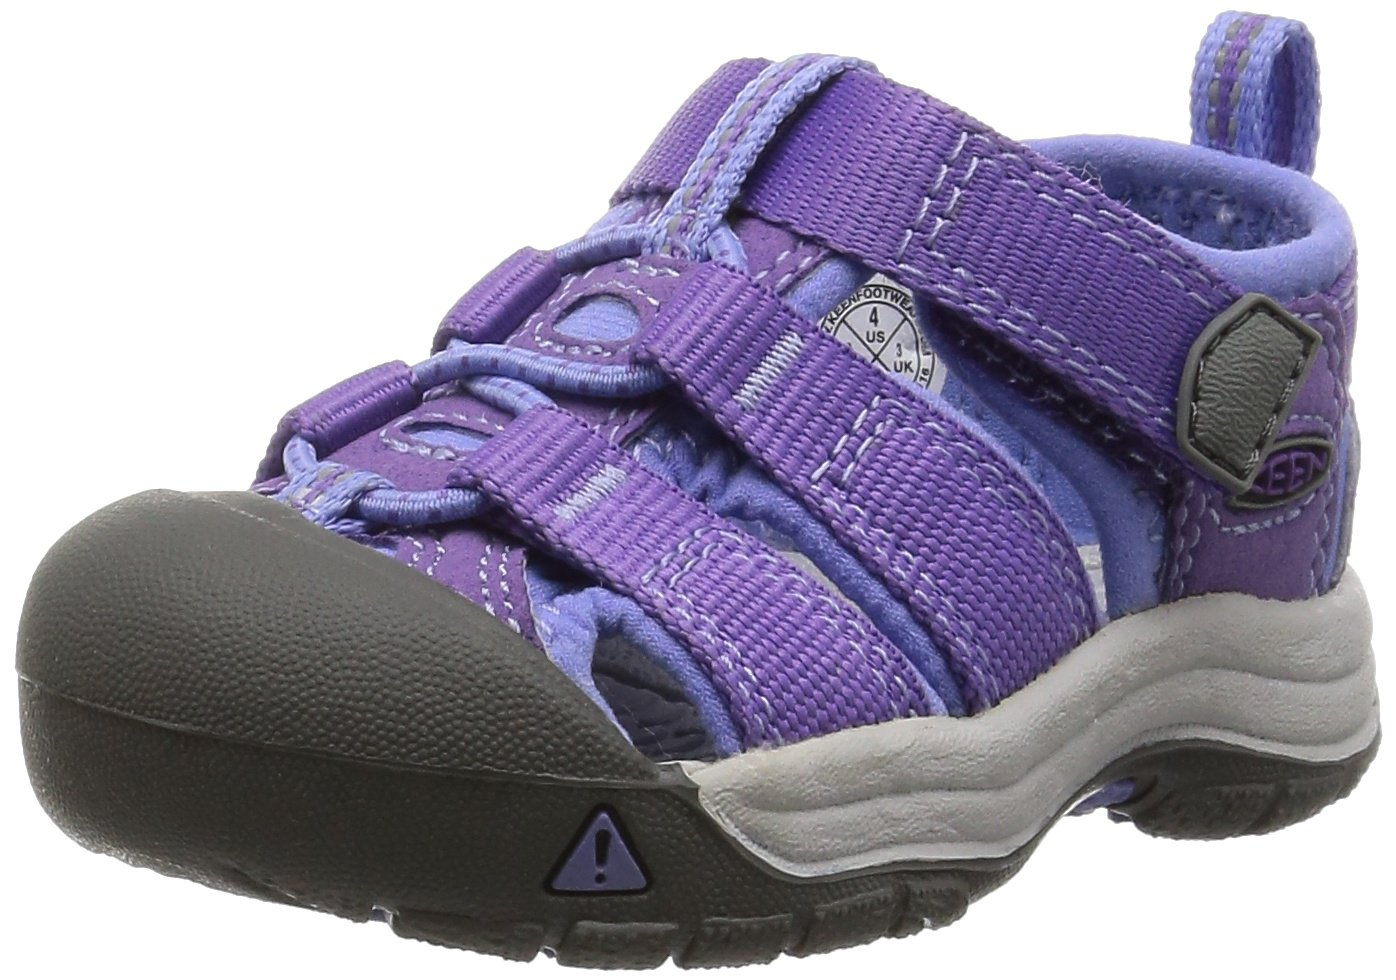 KEEN Toddler (1-4 Years) Newport H2 Purple Heart/Periwinkle Sandal - 8 Toddler US Toddler